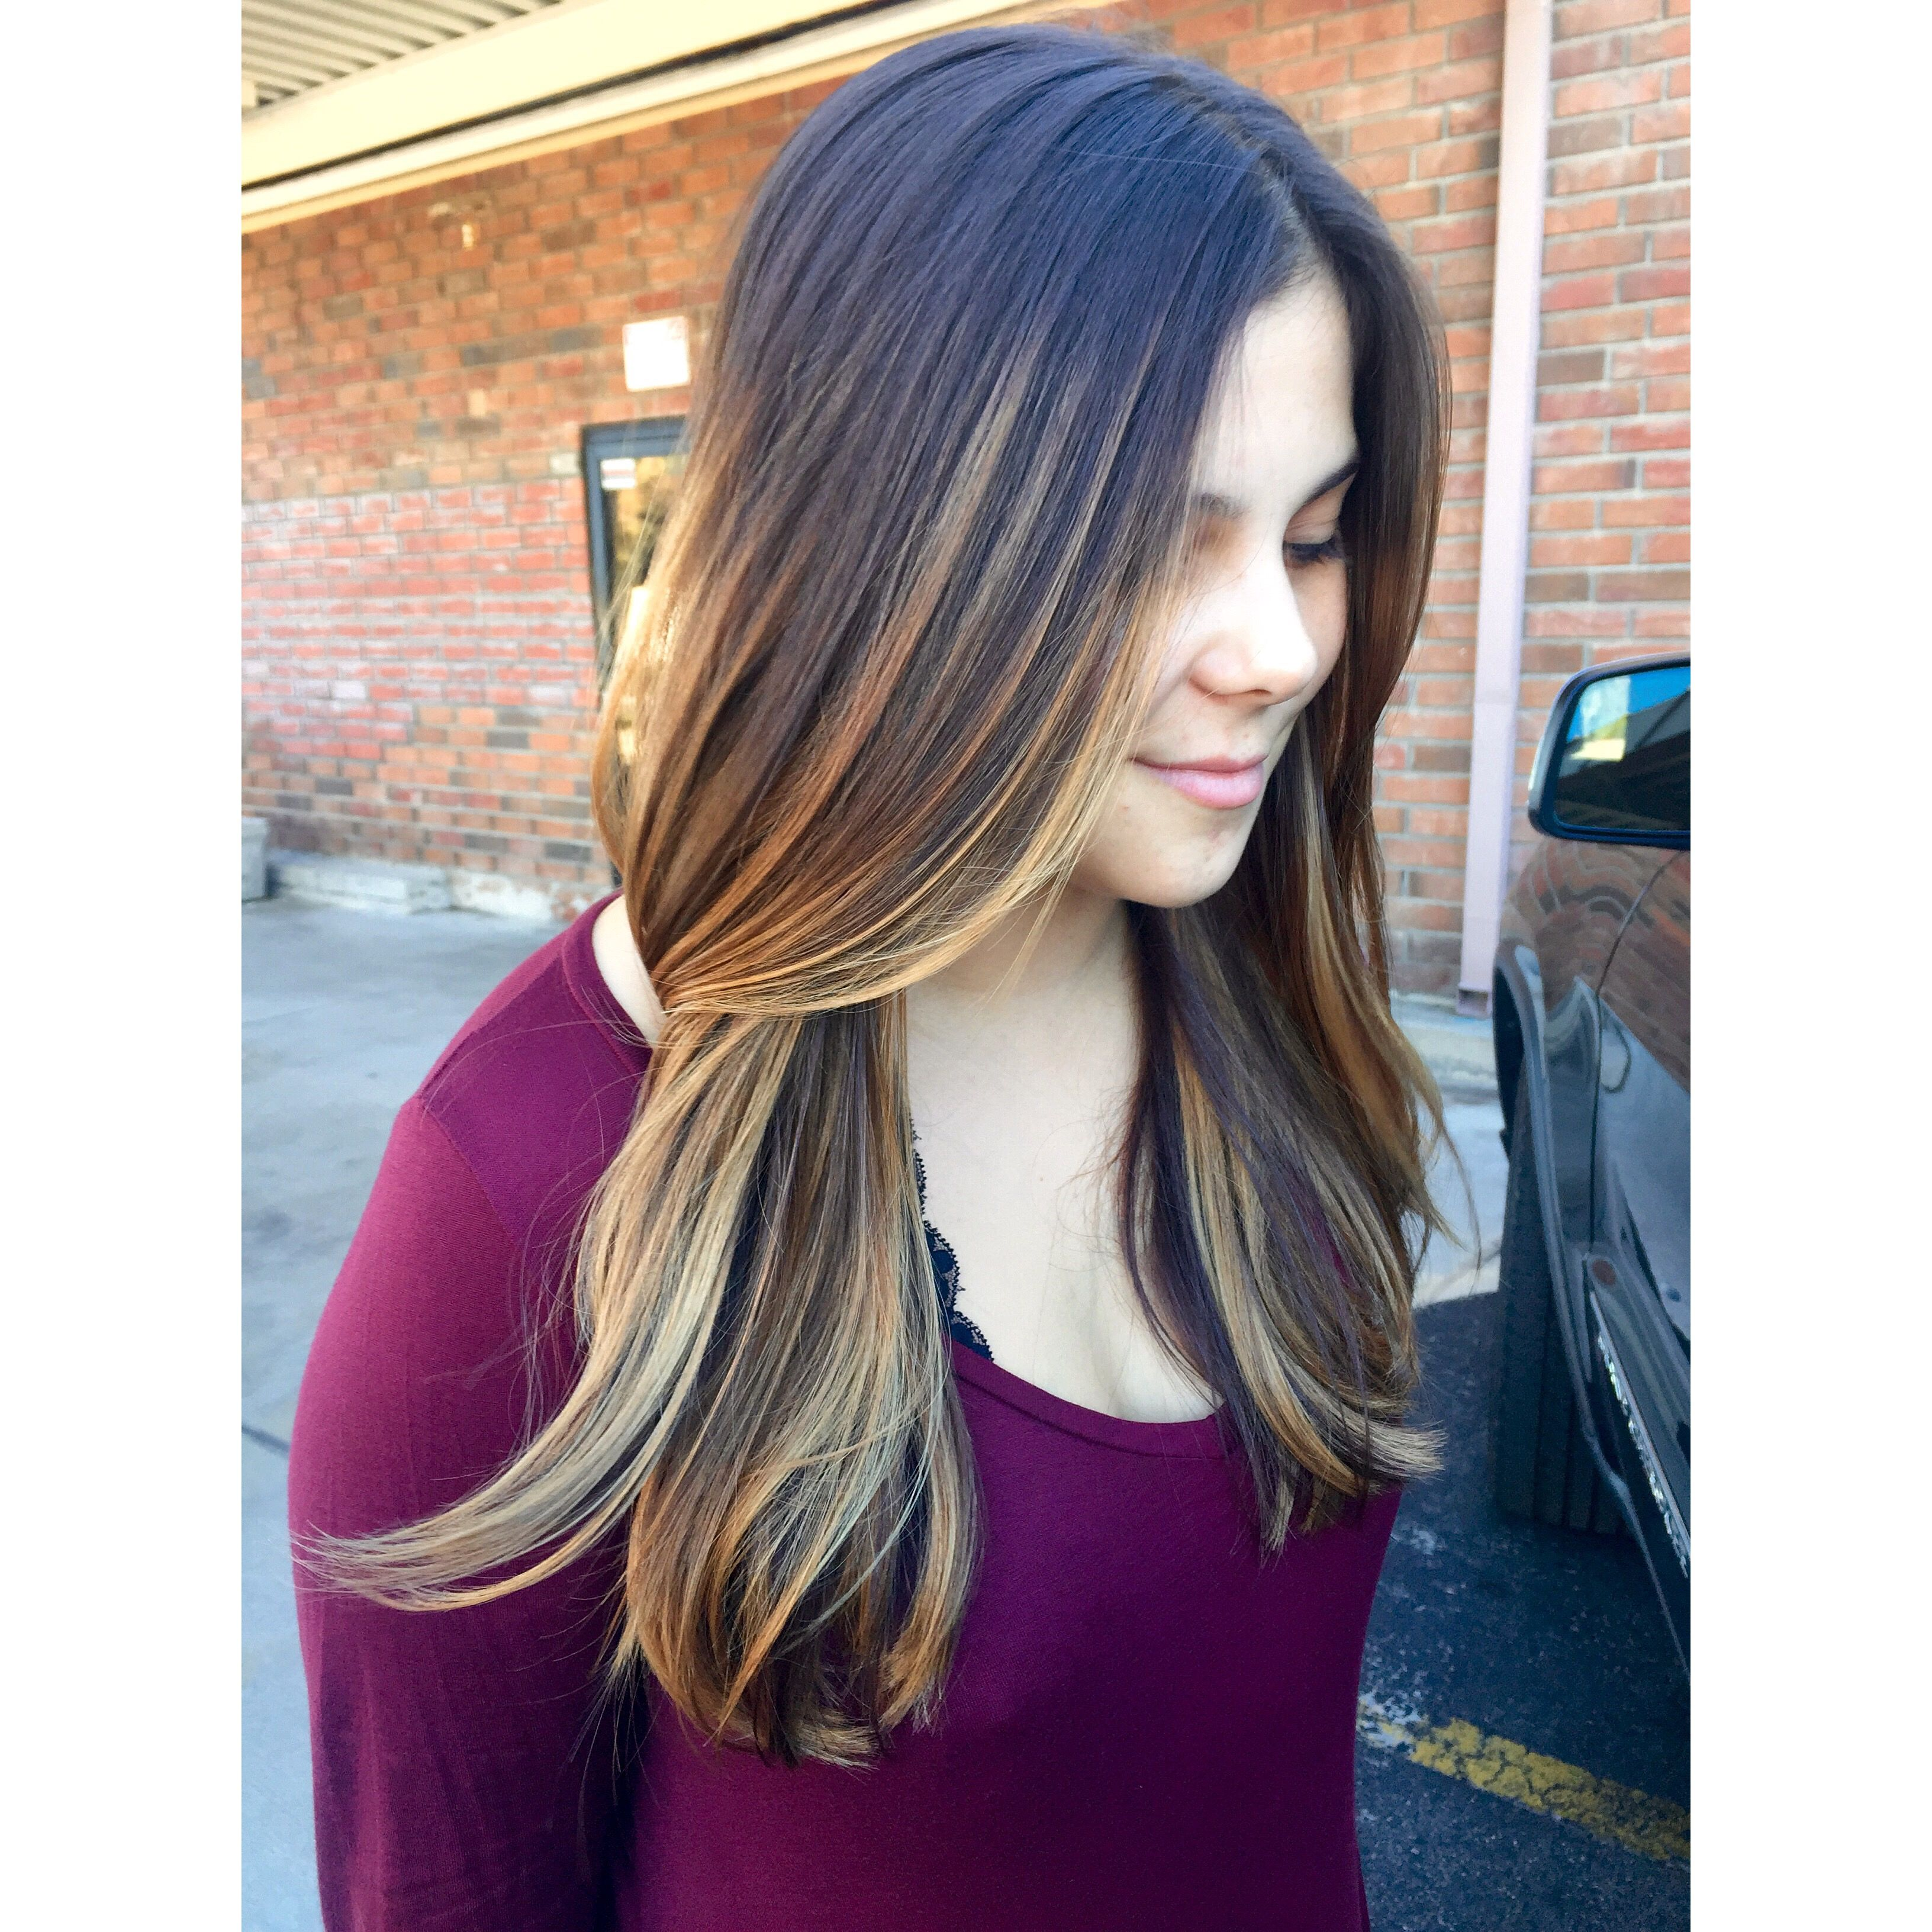 Blonde ombre on natural brown hair. @sarahgossetthair